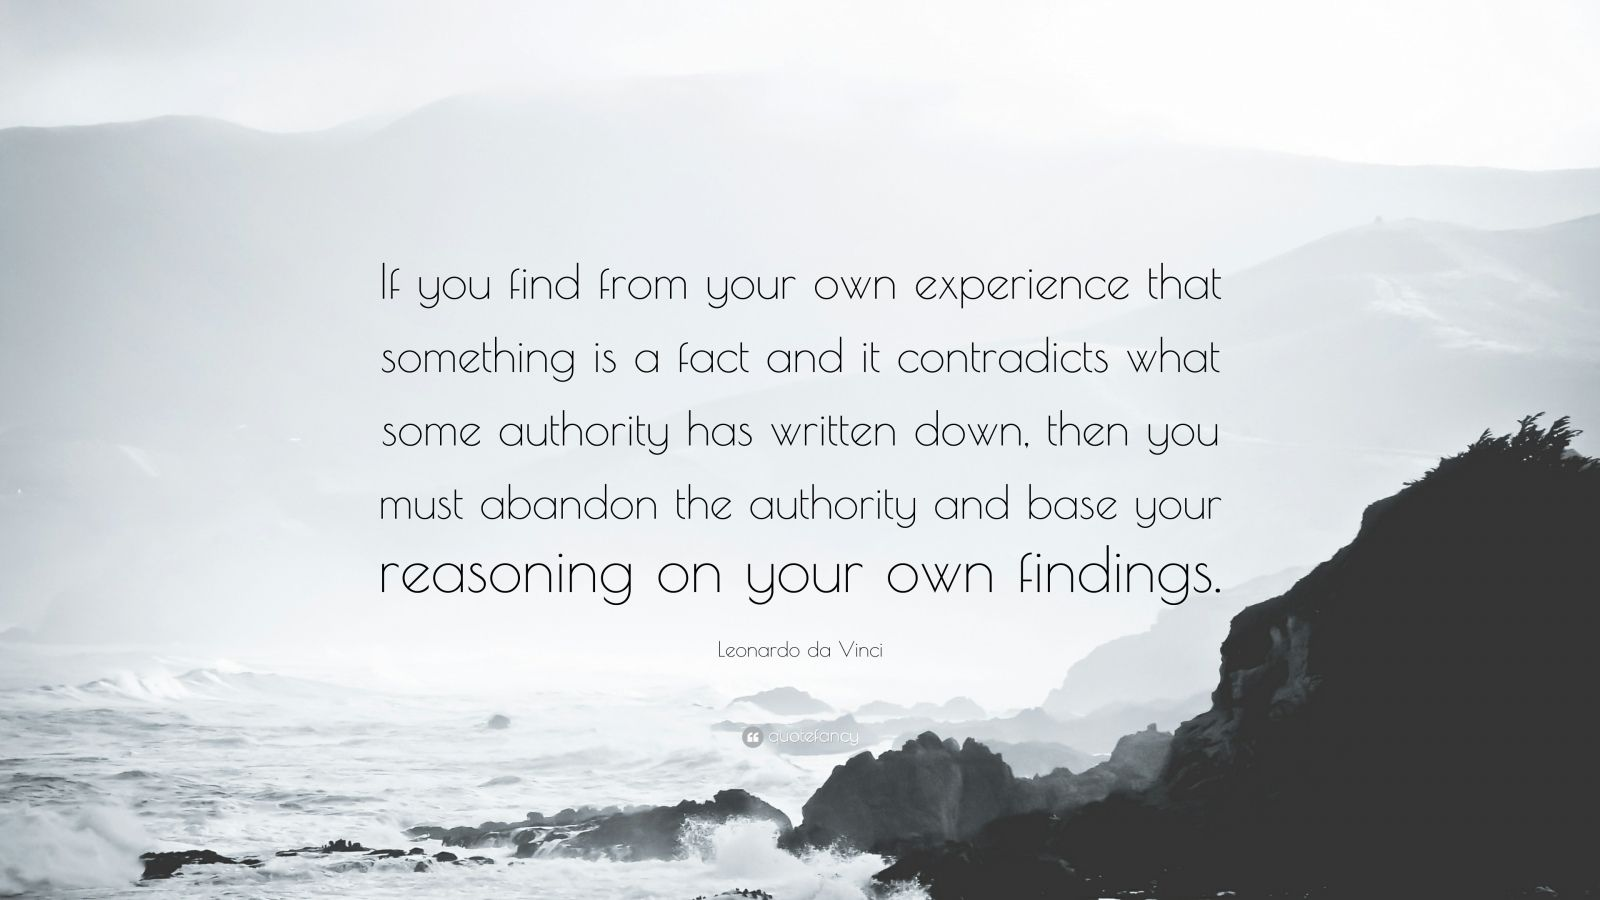 """Leonardo da Vinci Quote: """"If you find from your own experience that something is a fact and it contradicts what some authority has written down, then you must abandon the authority and base your reasoning on your own findings."""""""